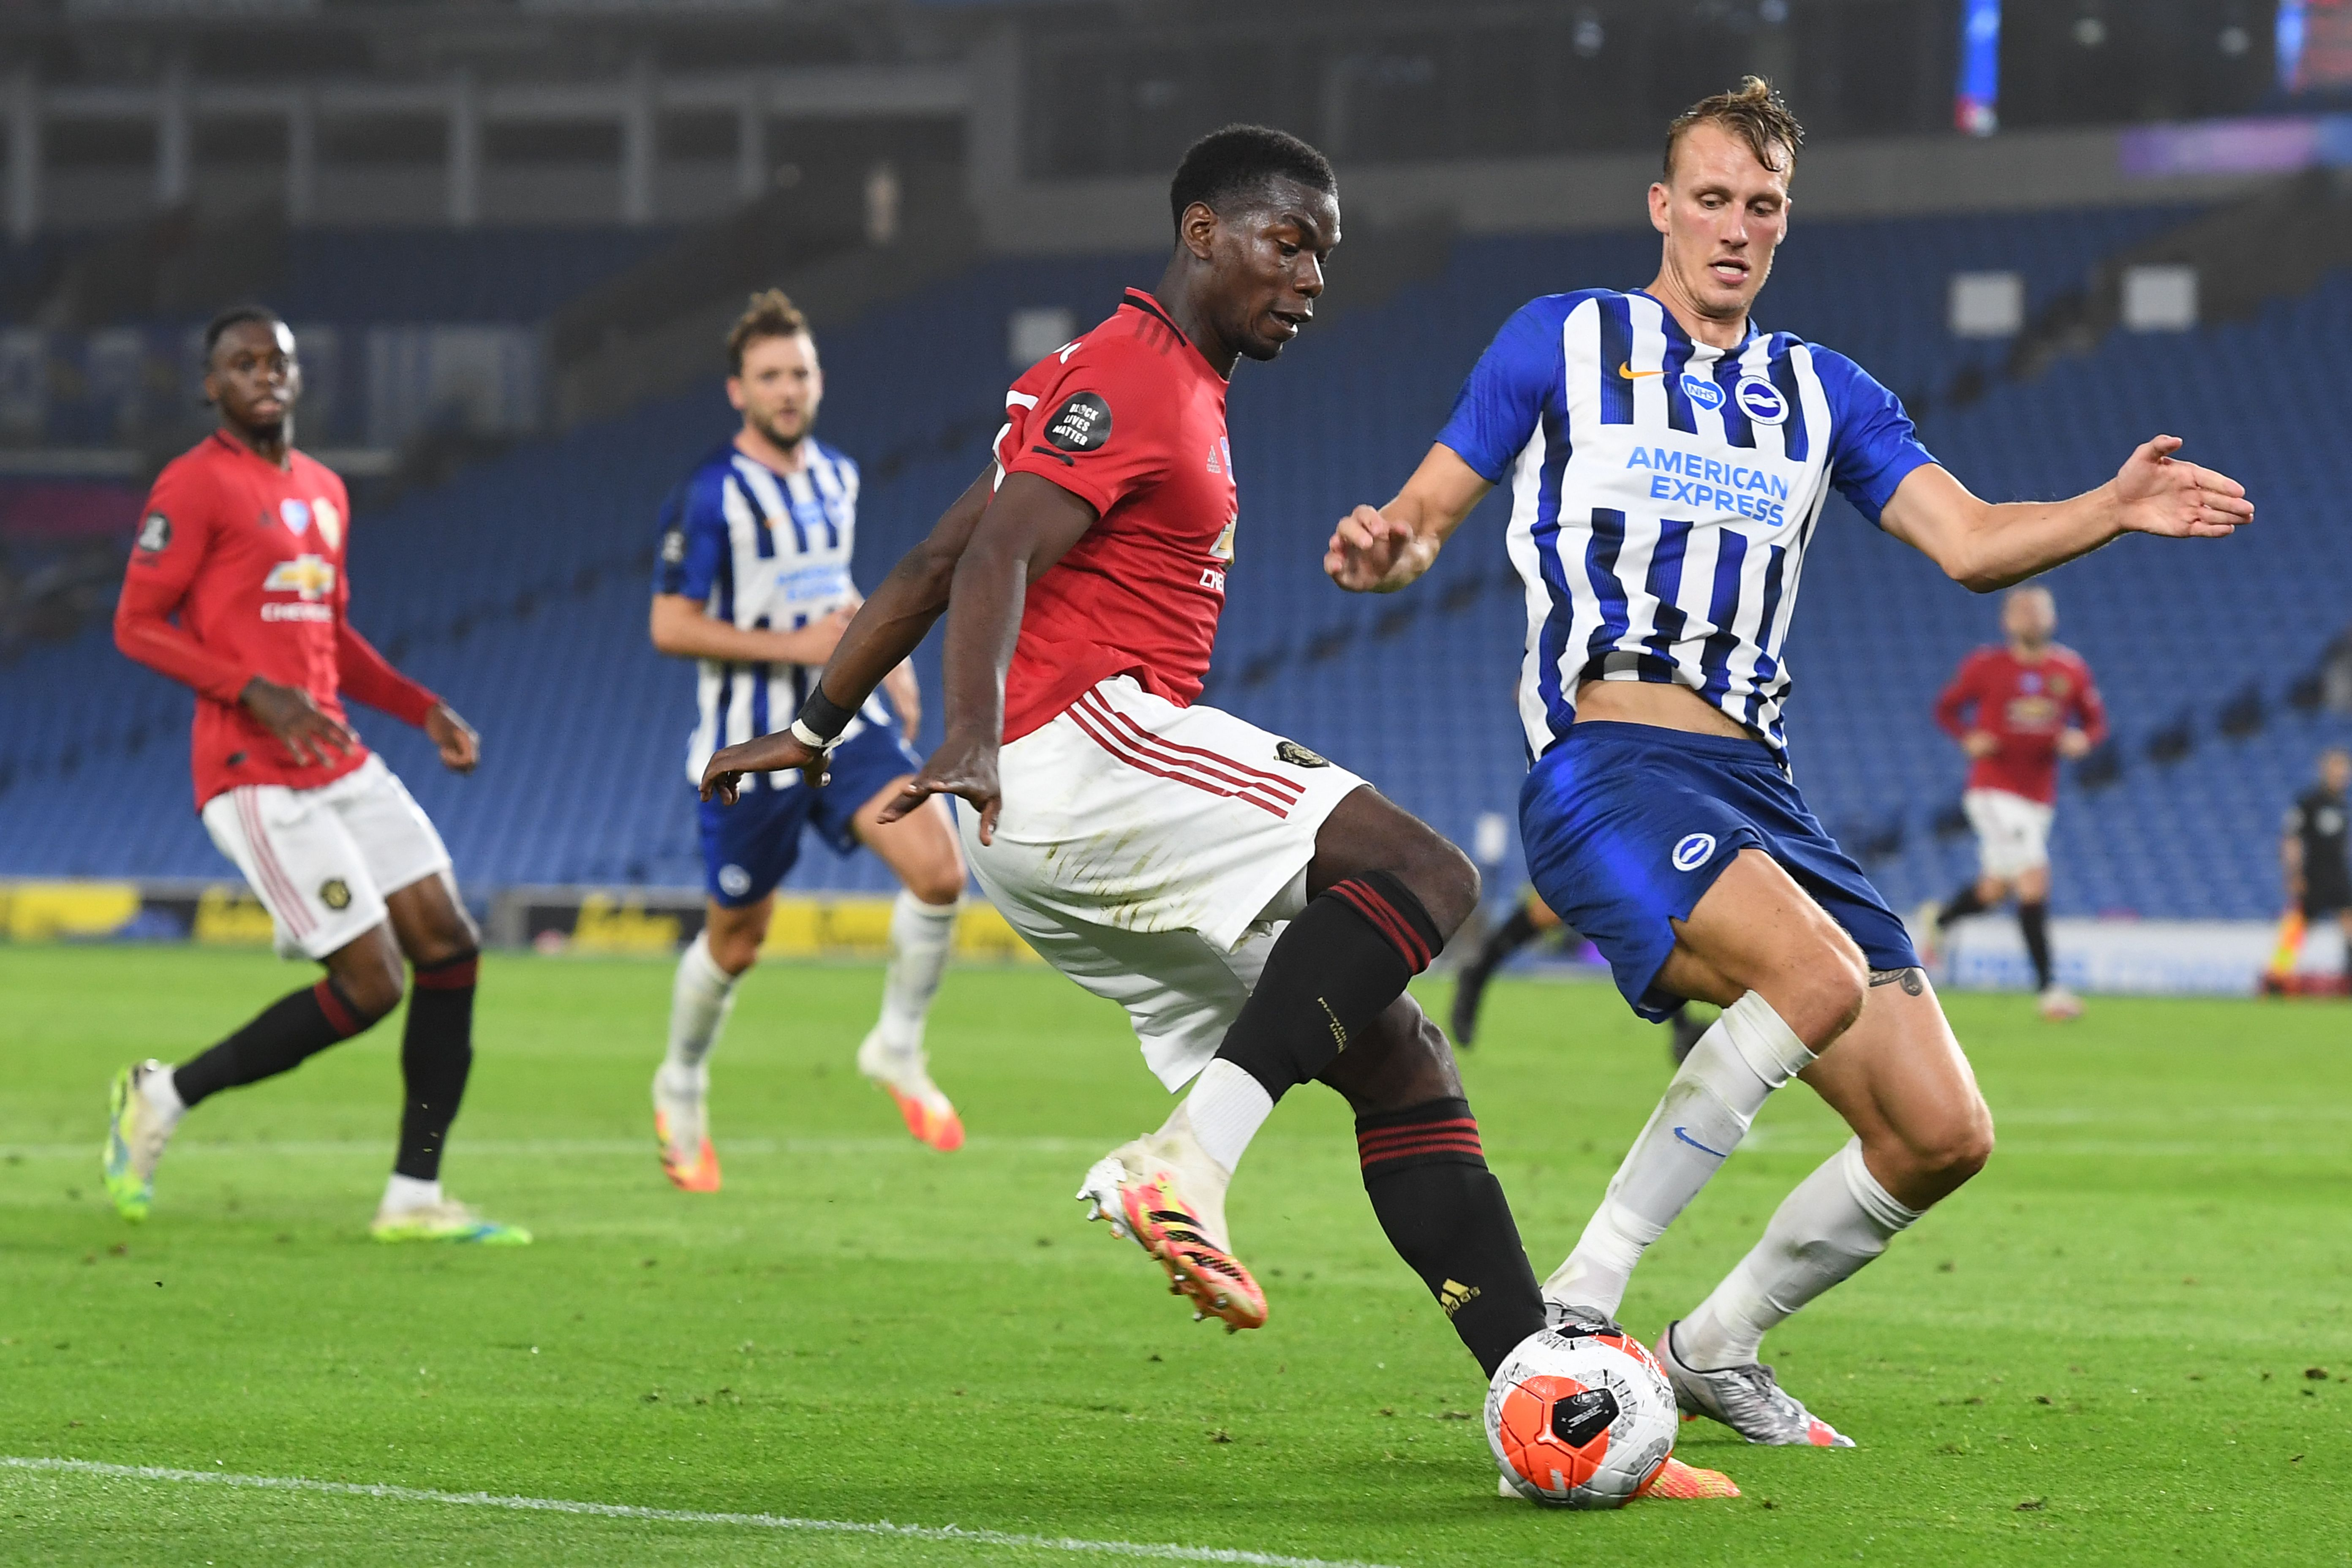 4-2-3-1 Manchester United Predicted Lineup Vs Aston Villa (Man United's Paul Pogba in action in the picture)